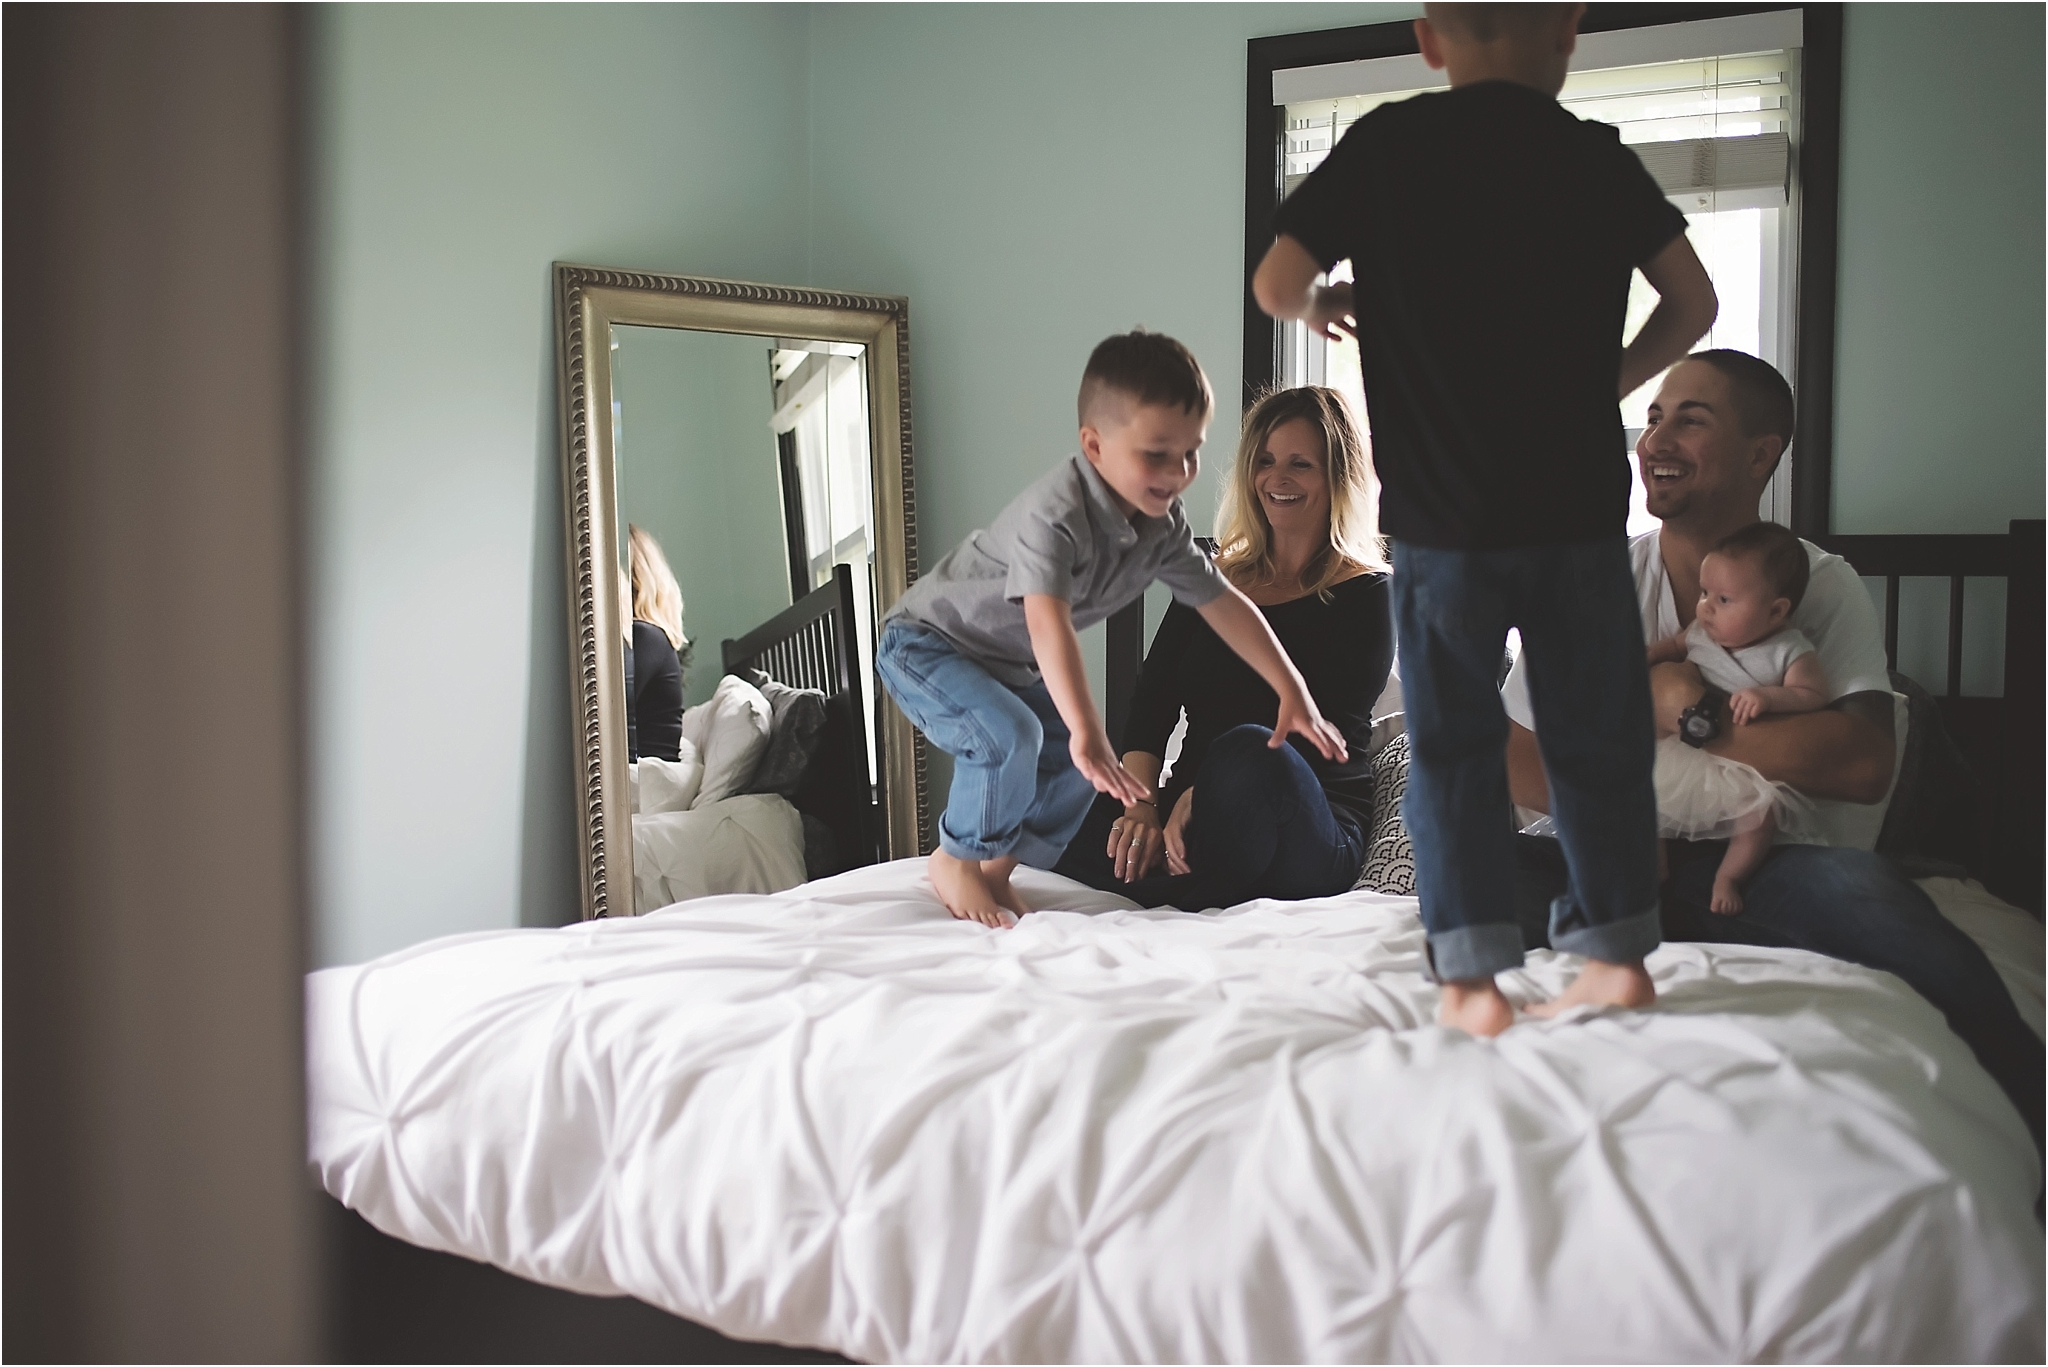 karra lynn photography - family lifestyle photographer michigan - jumping on the bed